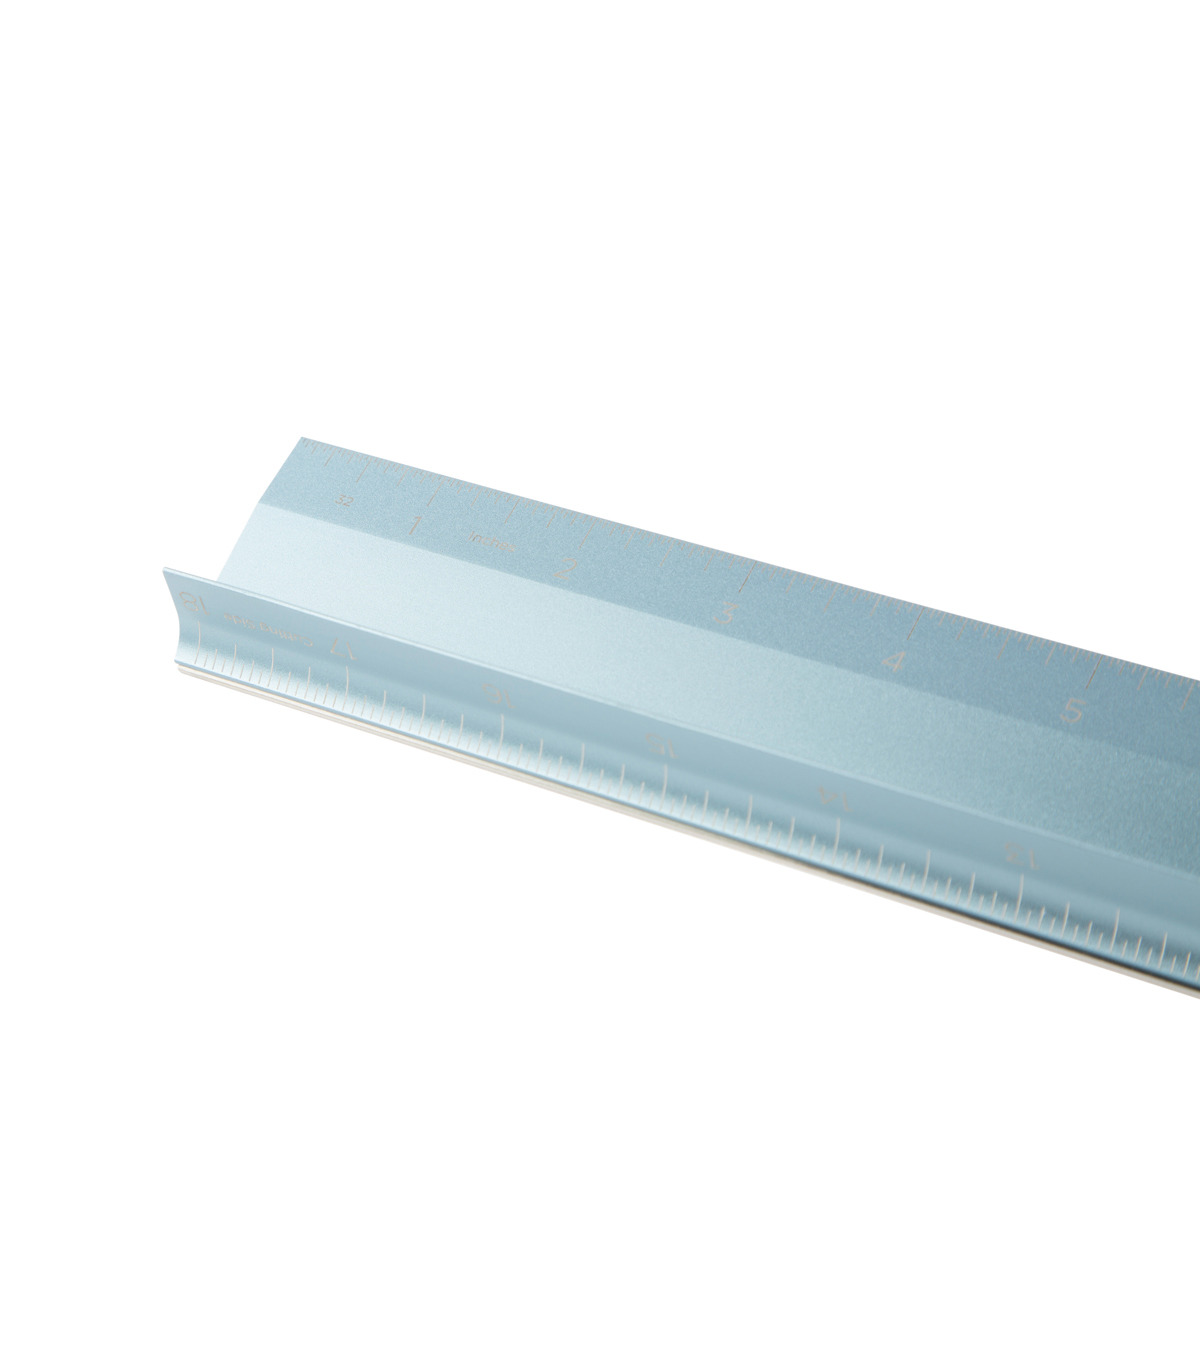 Cricut 18\u0022 Cutting Ruler-Blue